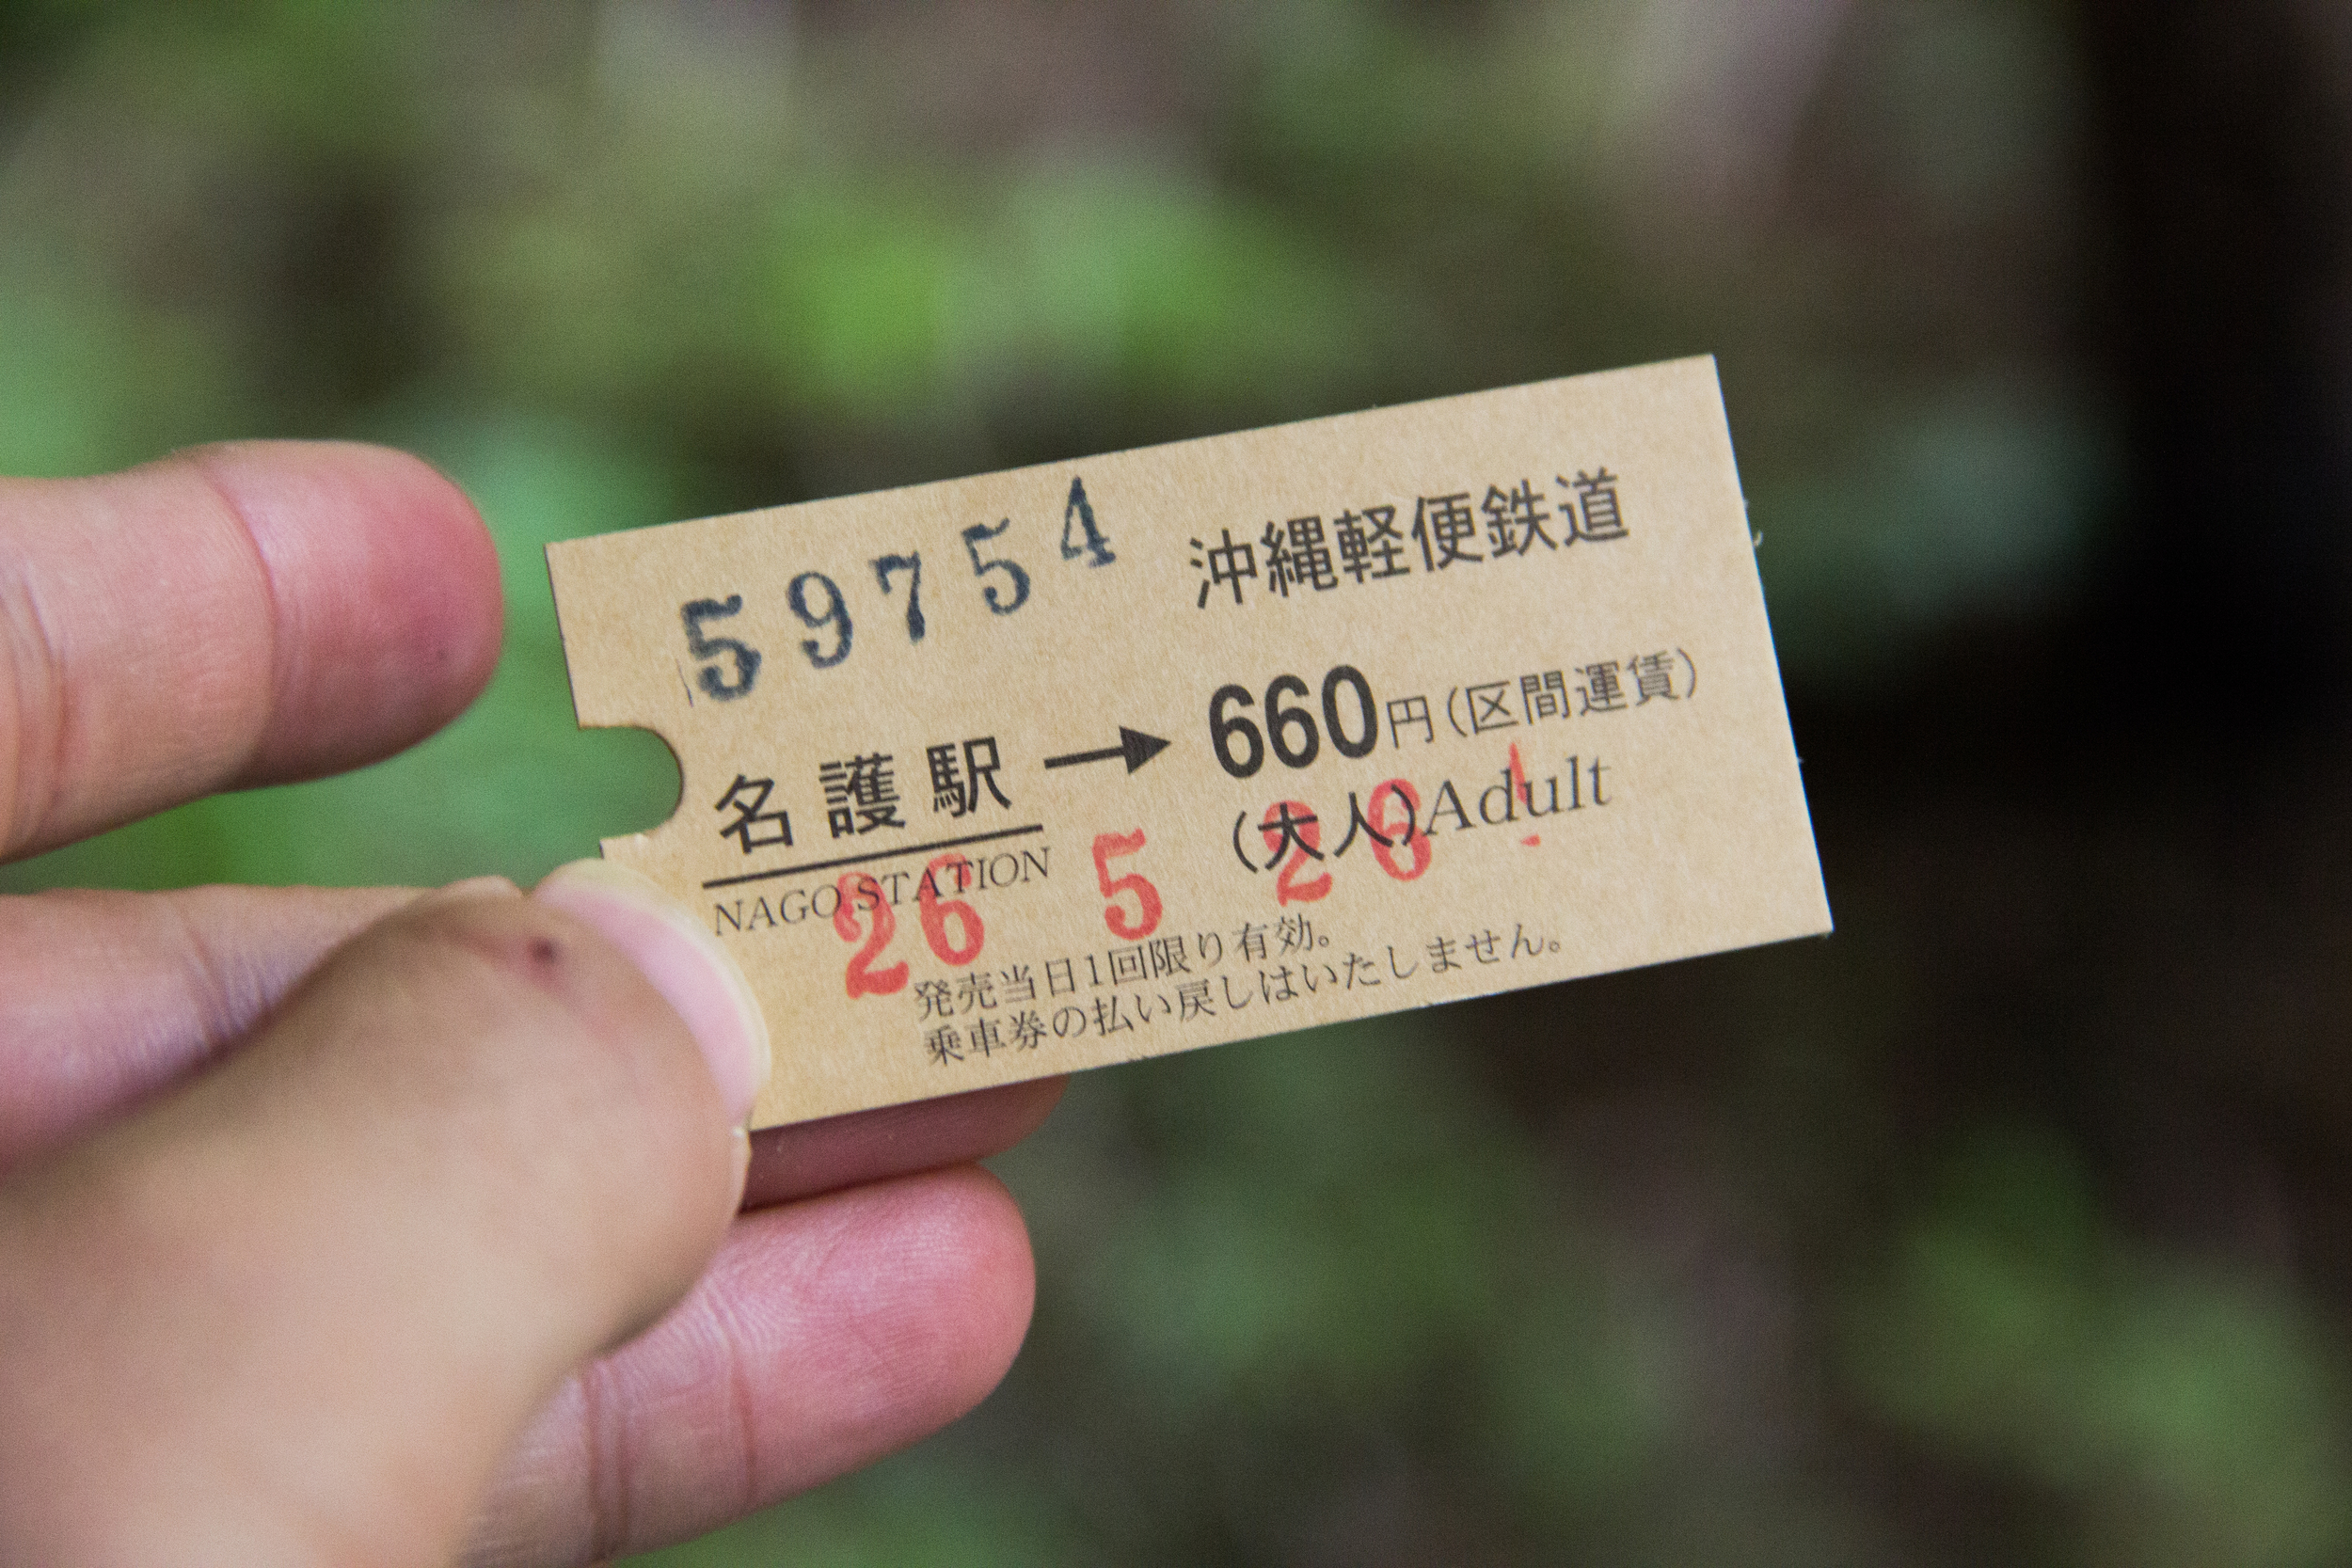 Our ticket, also there's only one stop.